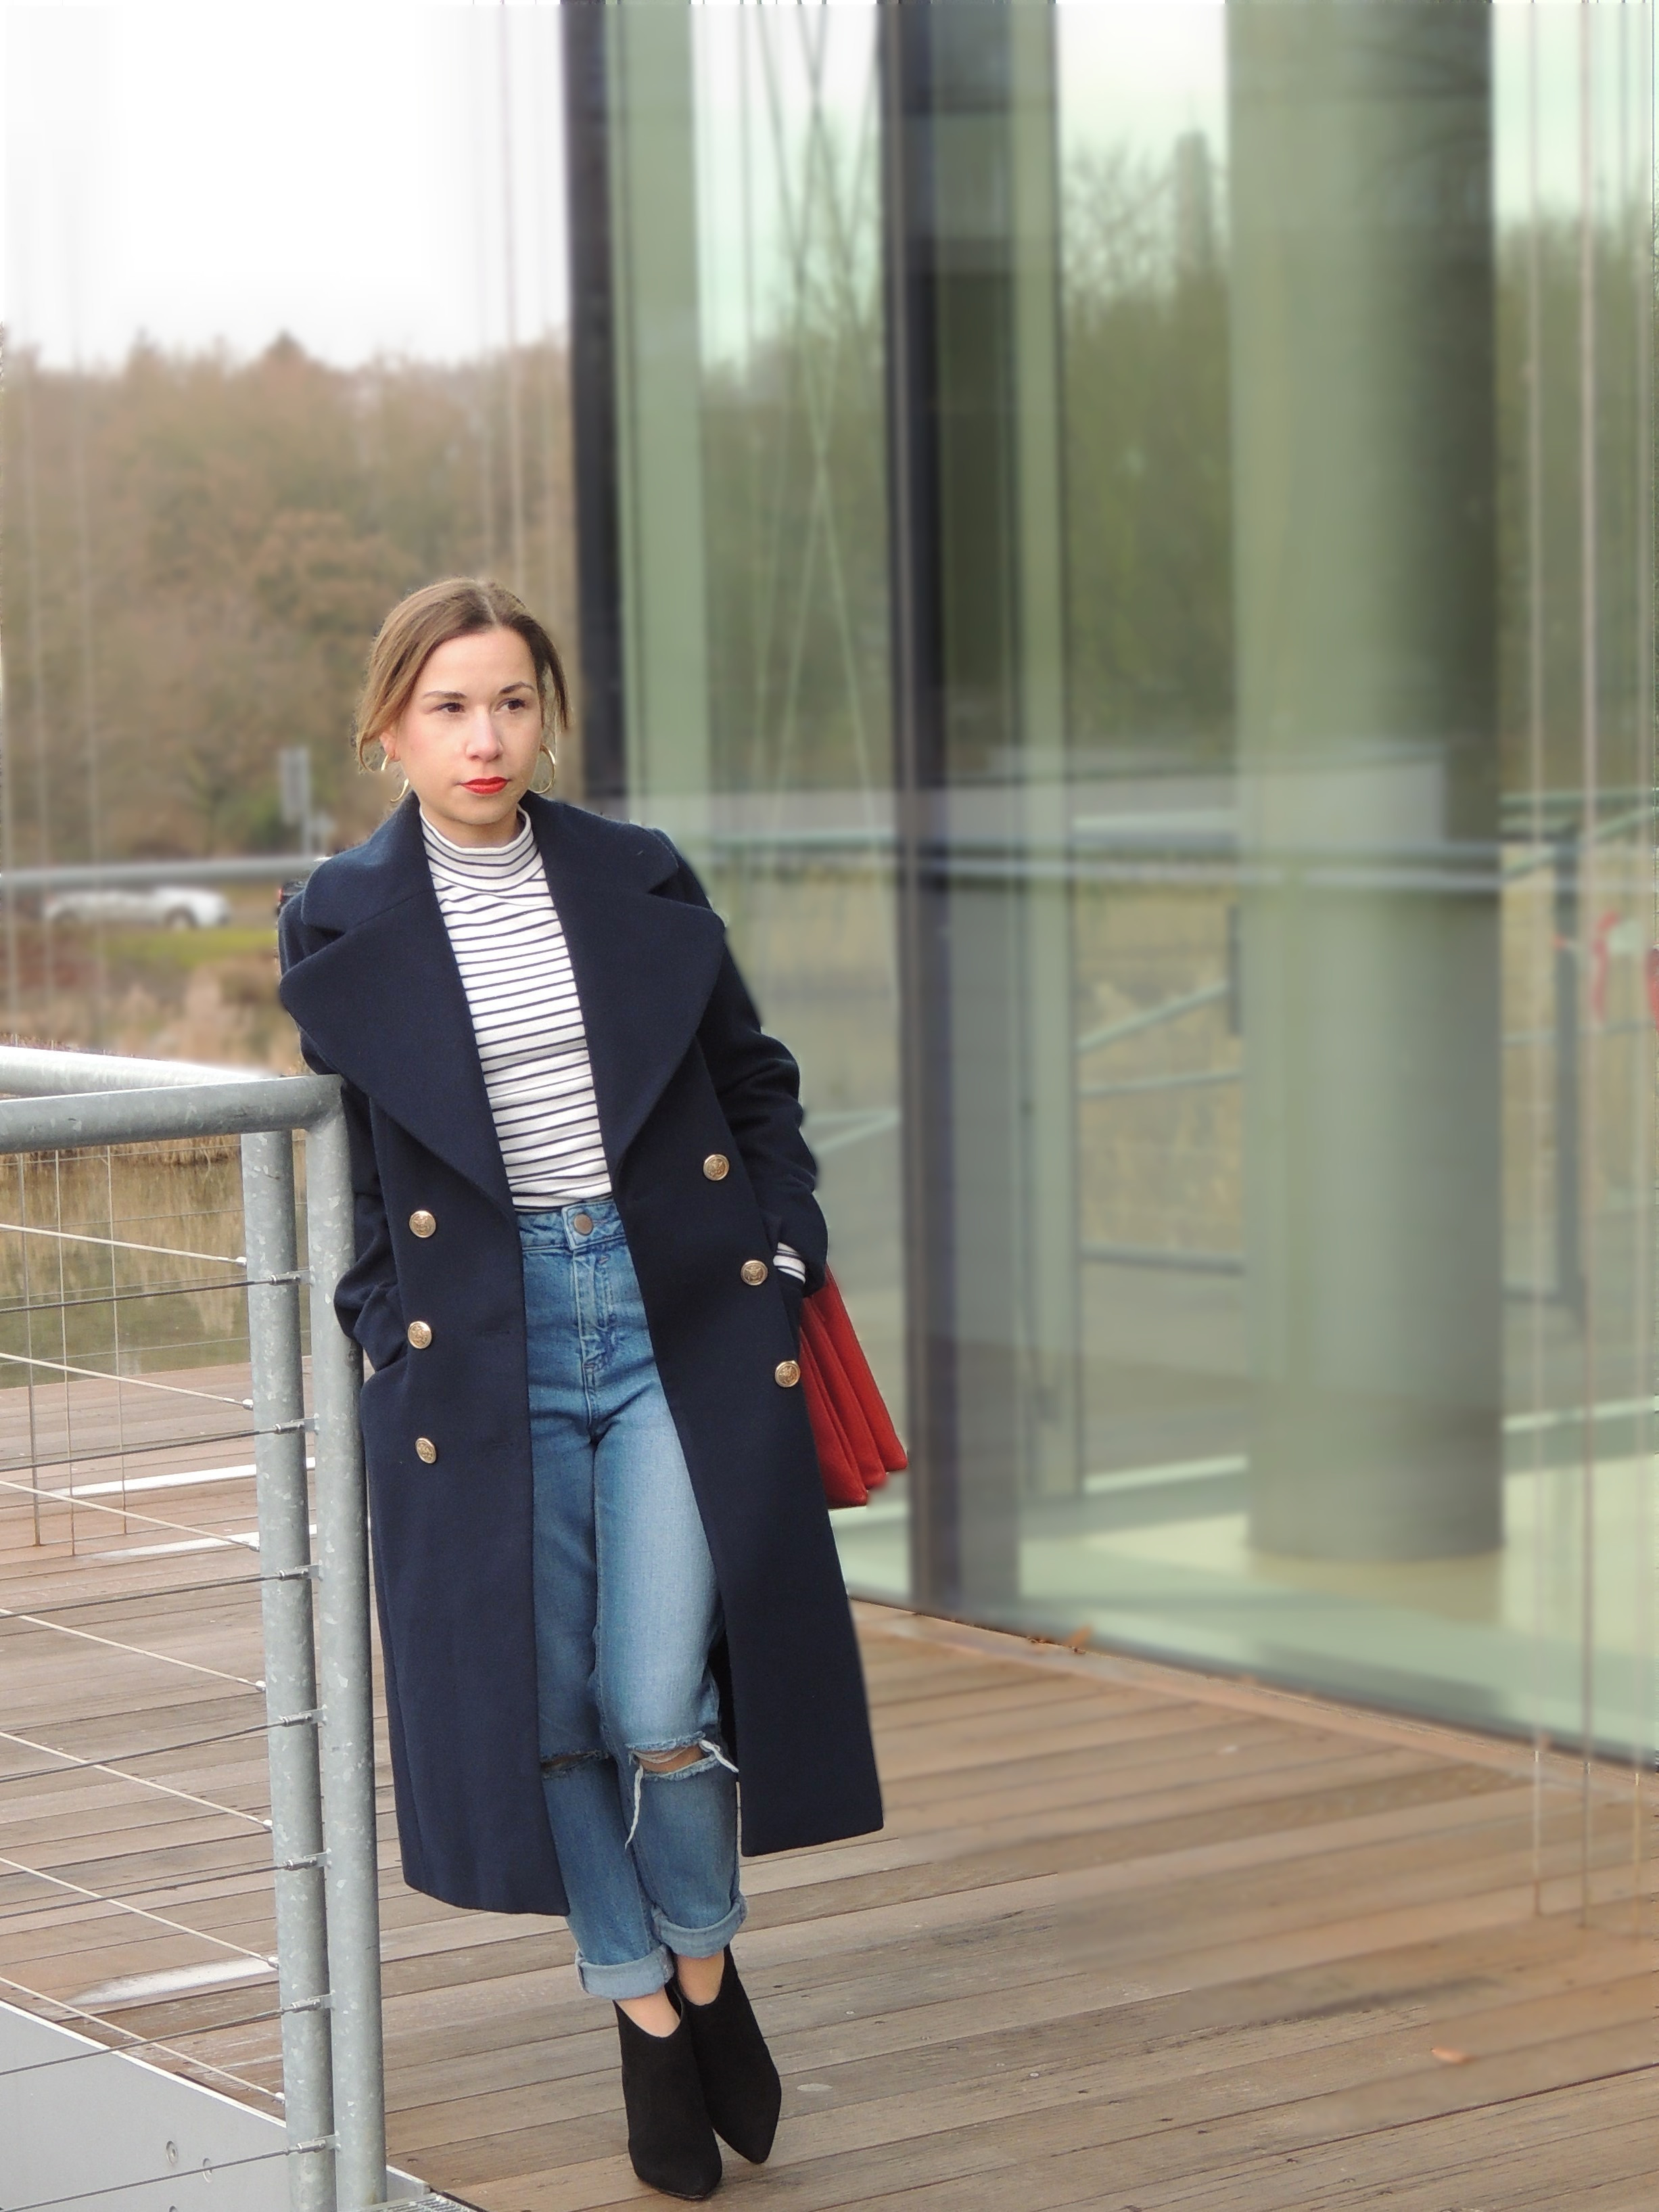 liebe-was-ist-fashionblog-dusseldorf-petite-fashion-januar-blues-uniform-military-coat-trend-lookbook-advic-1